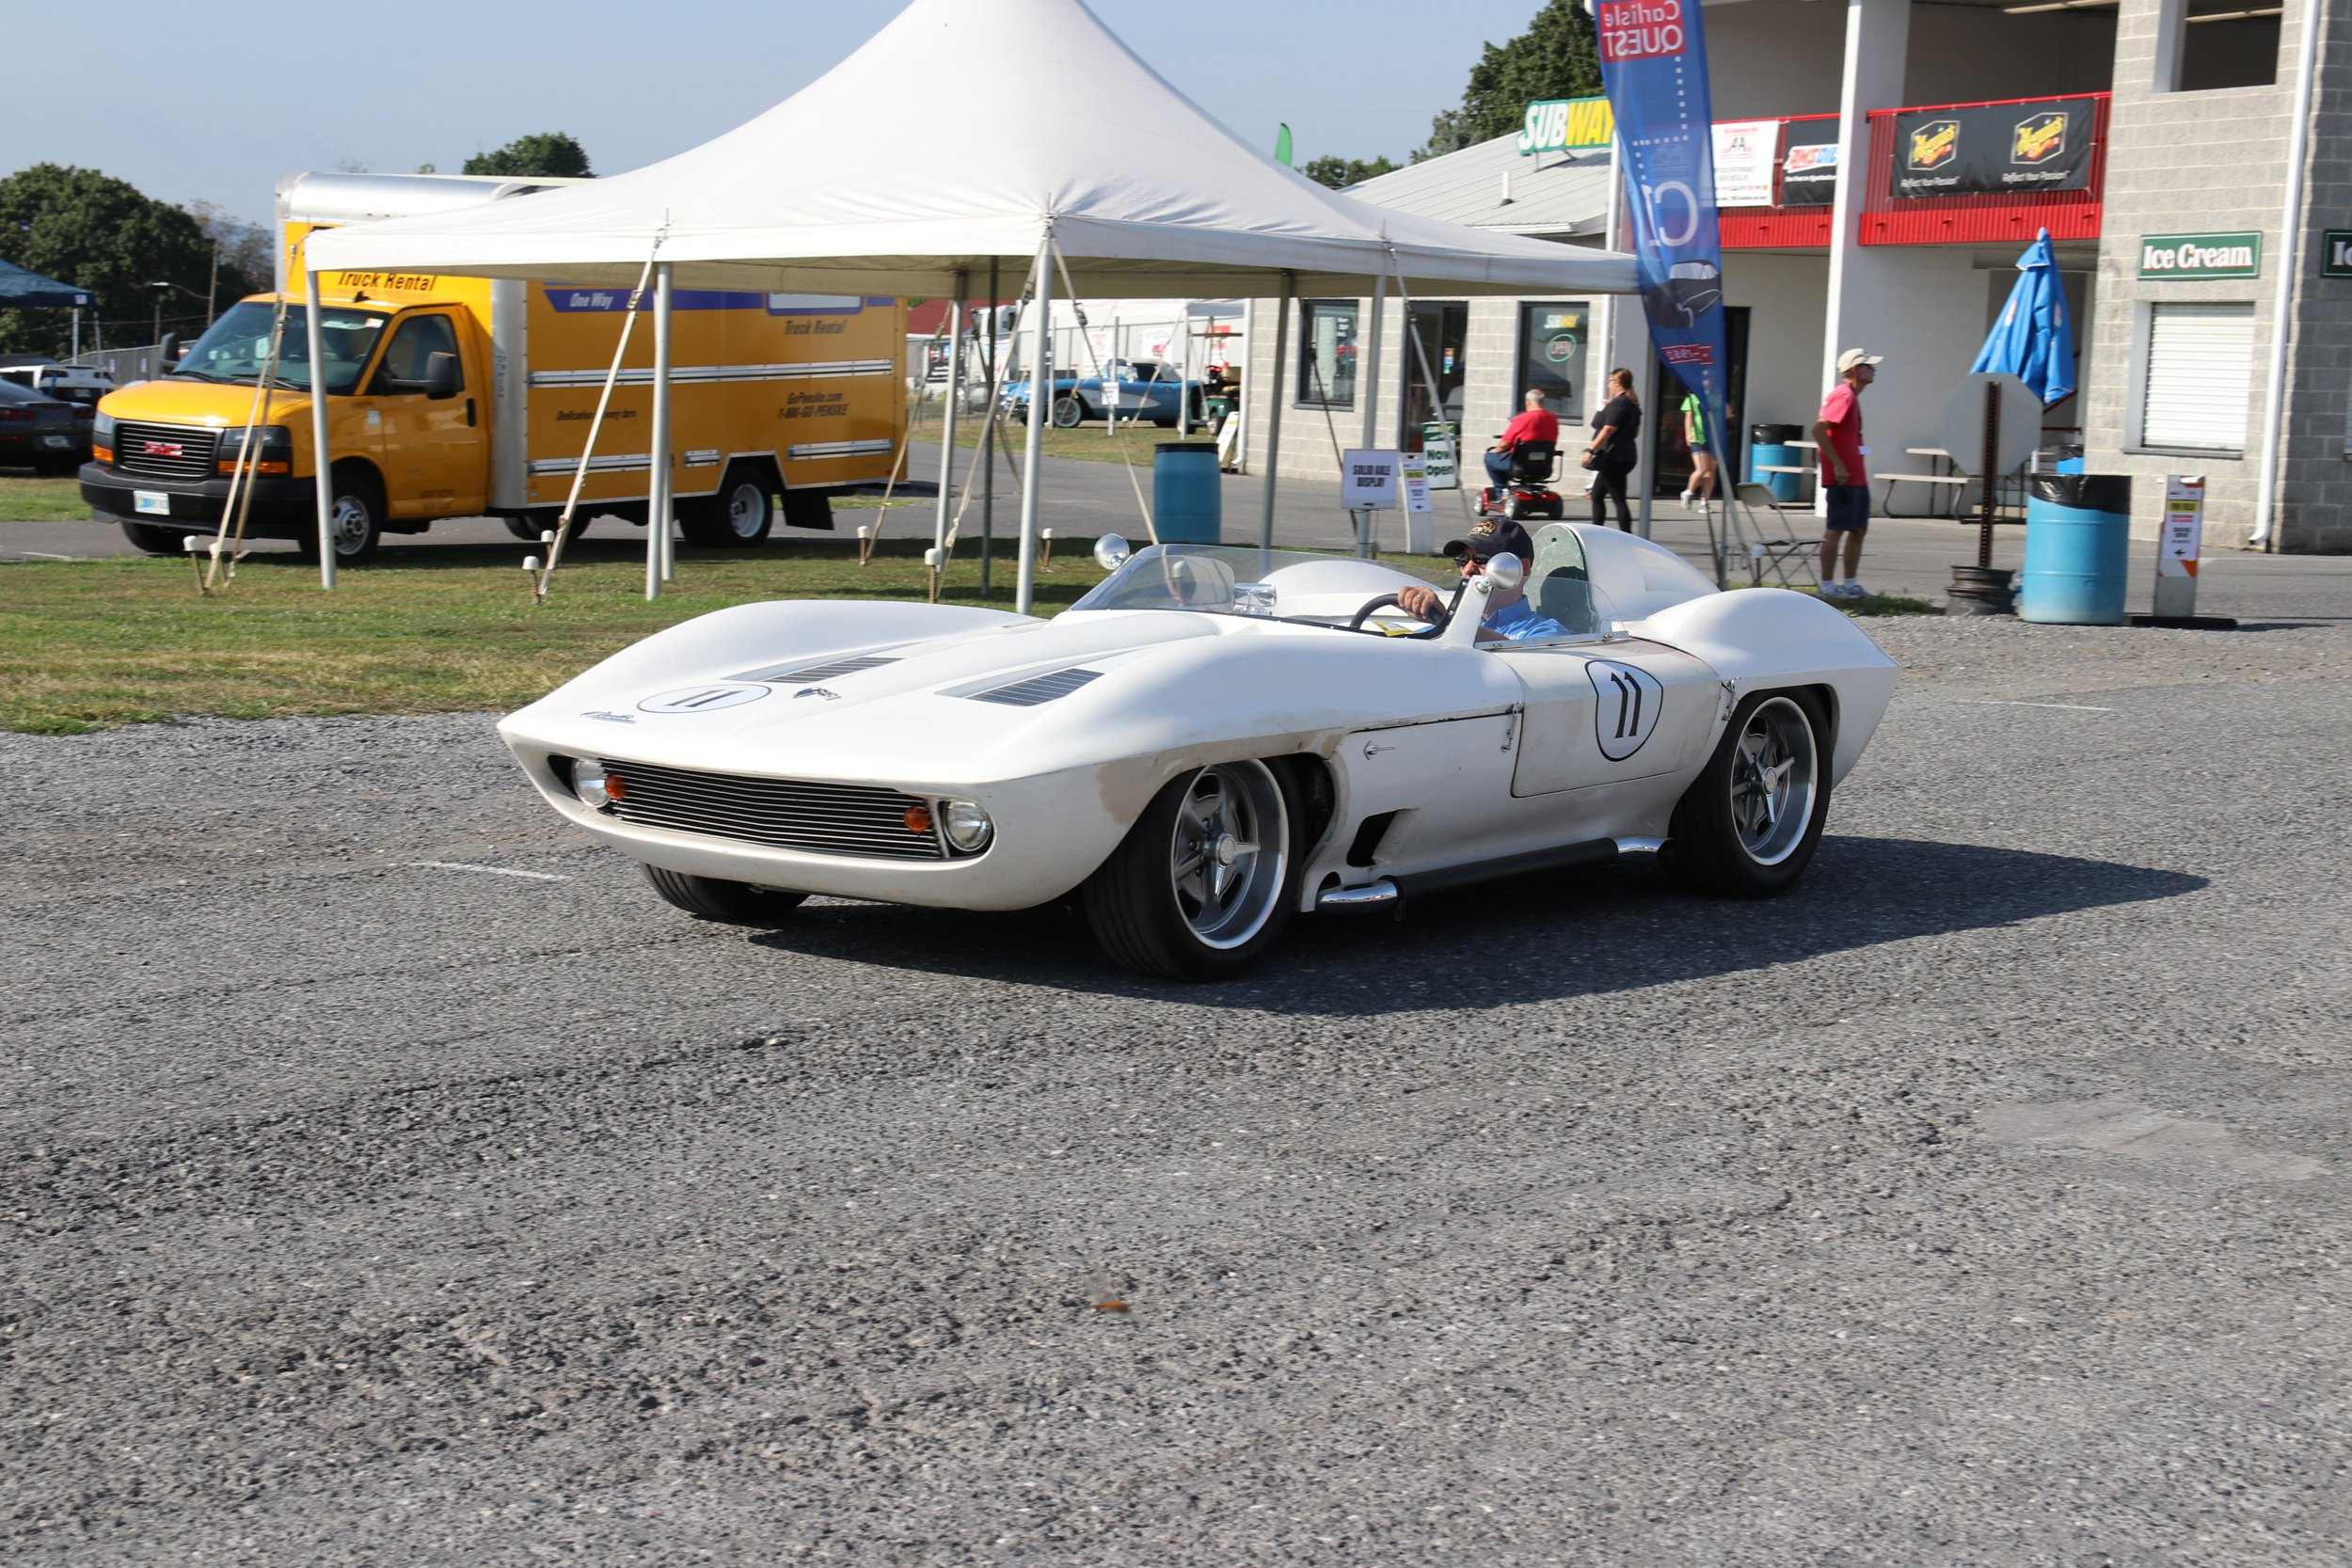 corvettes-at-carlisle-2019-one-for-the-record-books-2019-08-28_20-23-32_003681.jpg